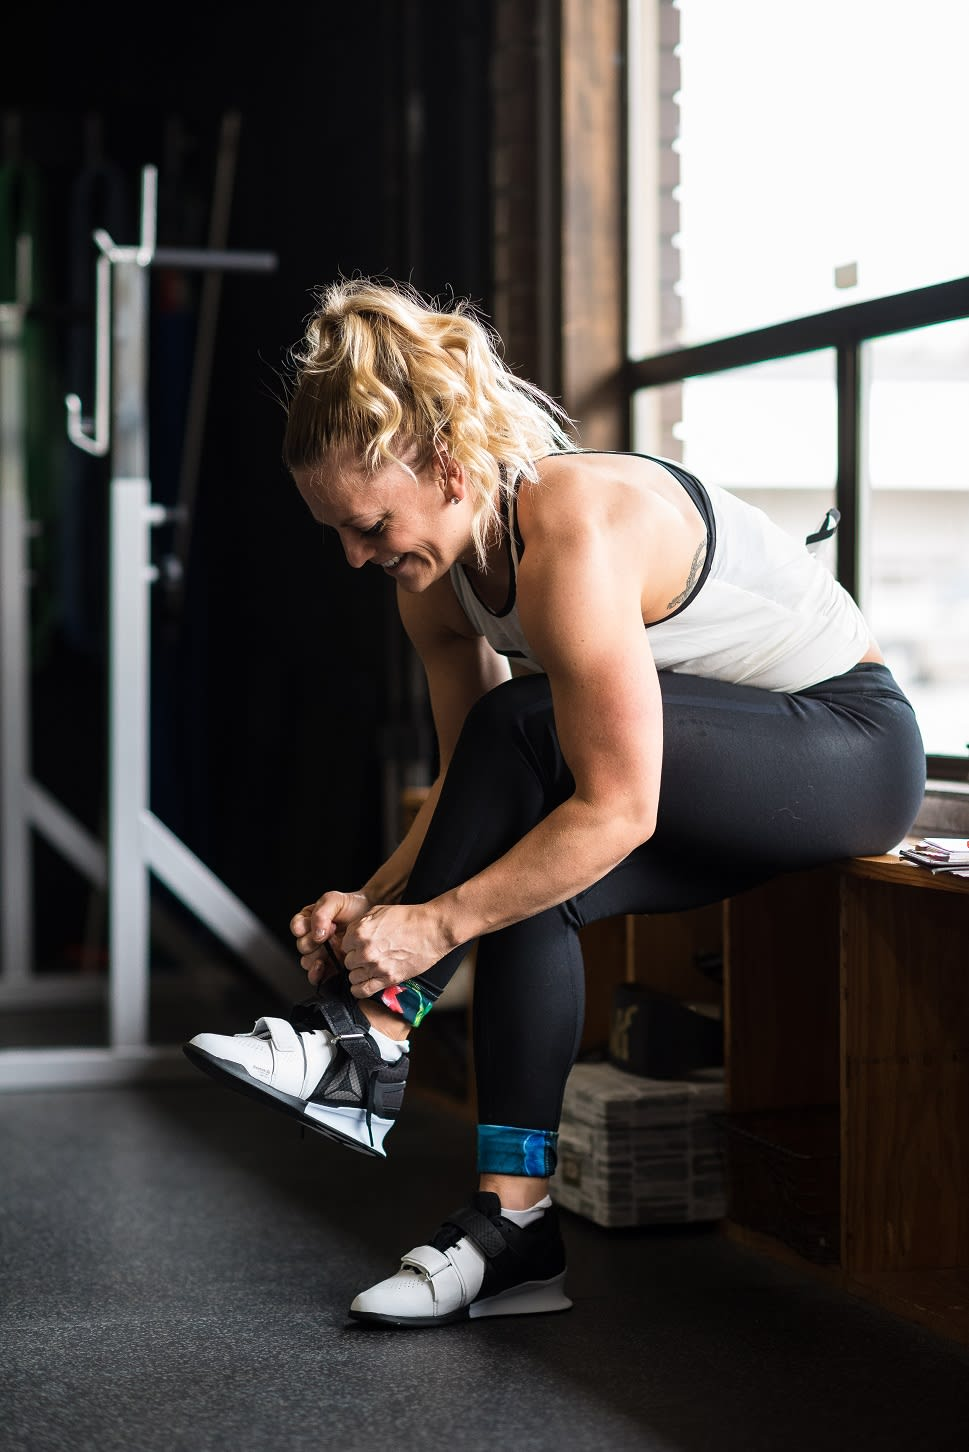 morghan-king-weightlifting-6